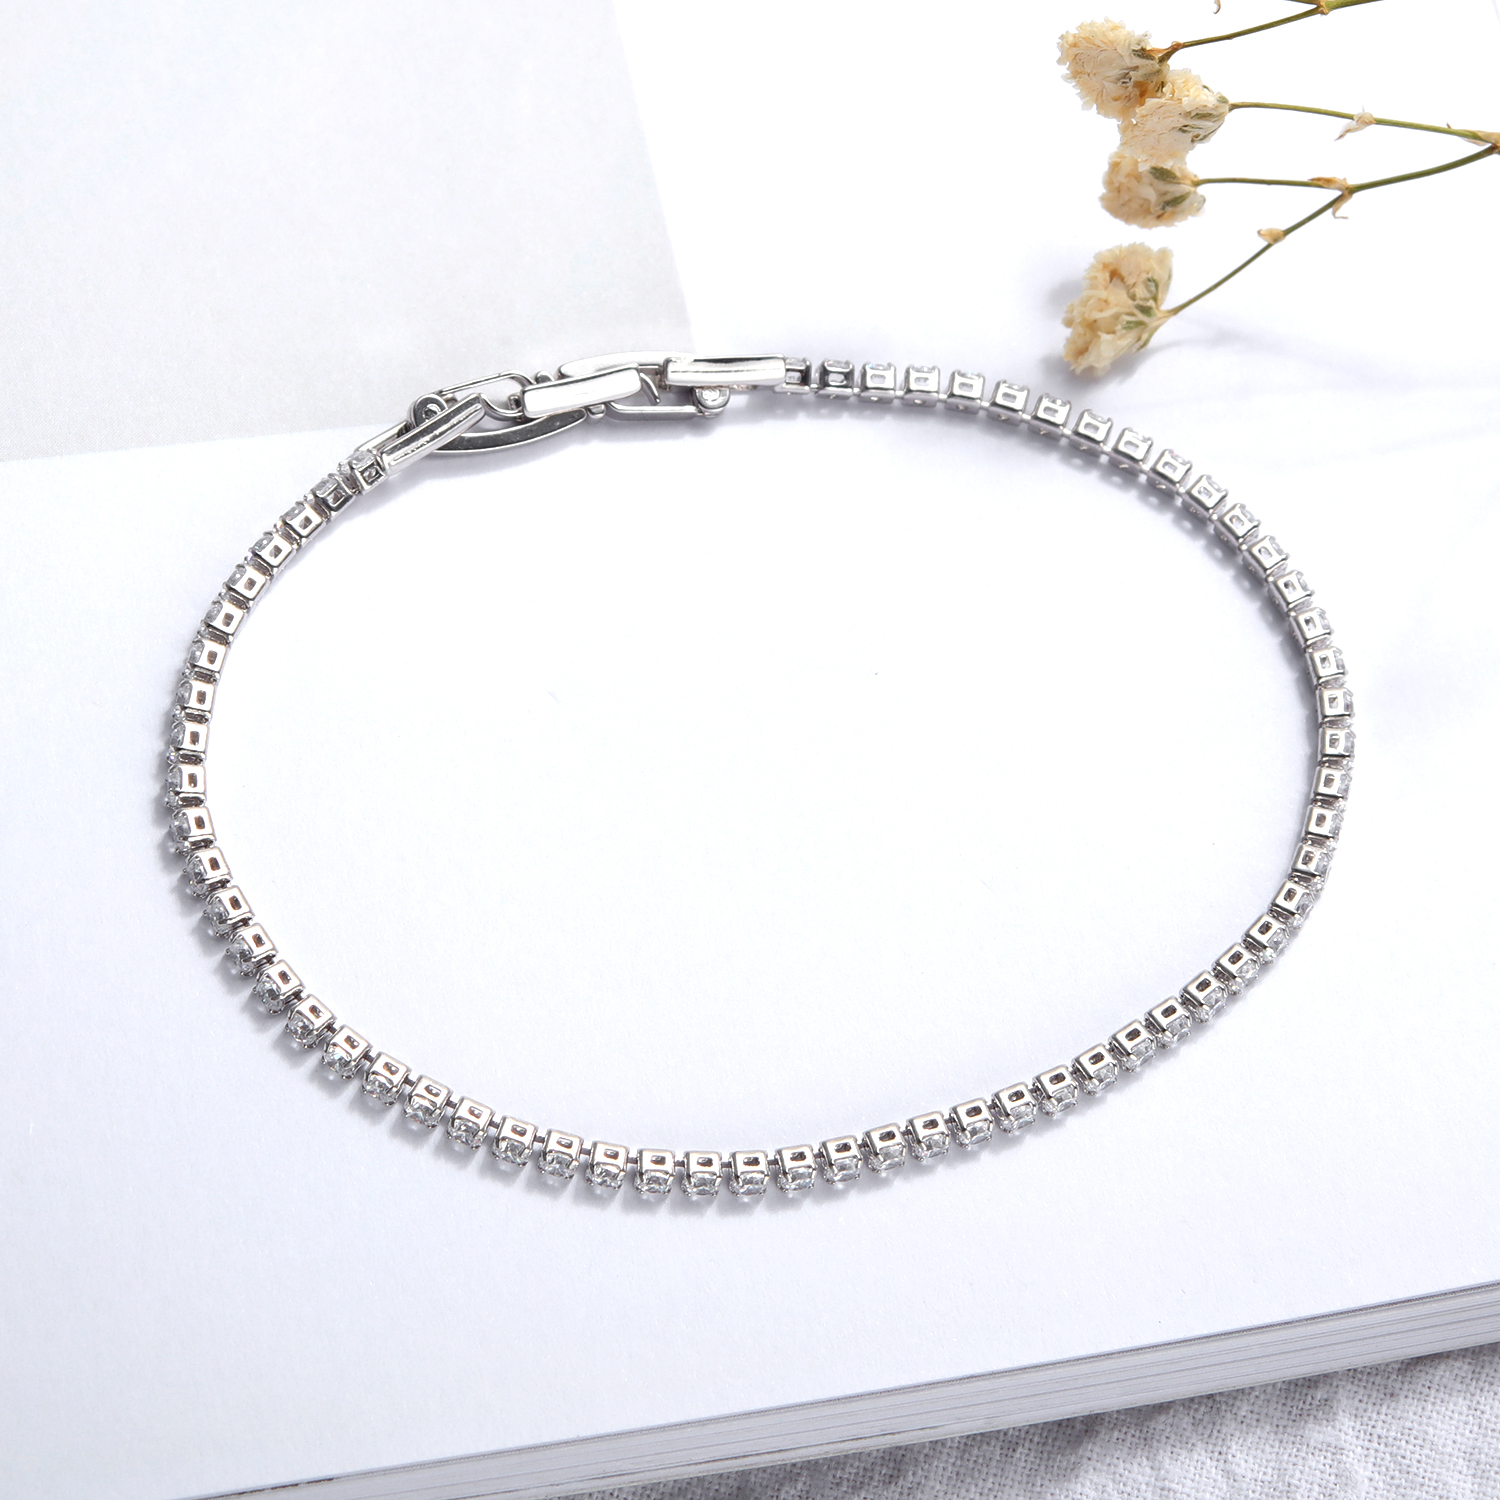 Customized High-Quality Cubic Zirconia Women Jewelry Bracelet Diamond